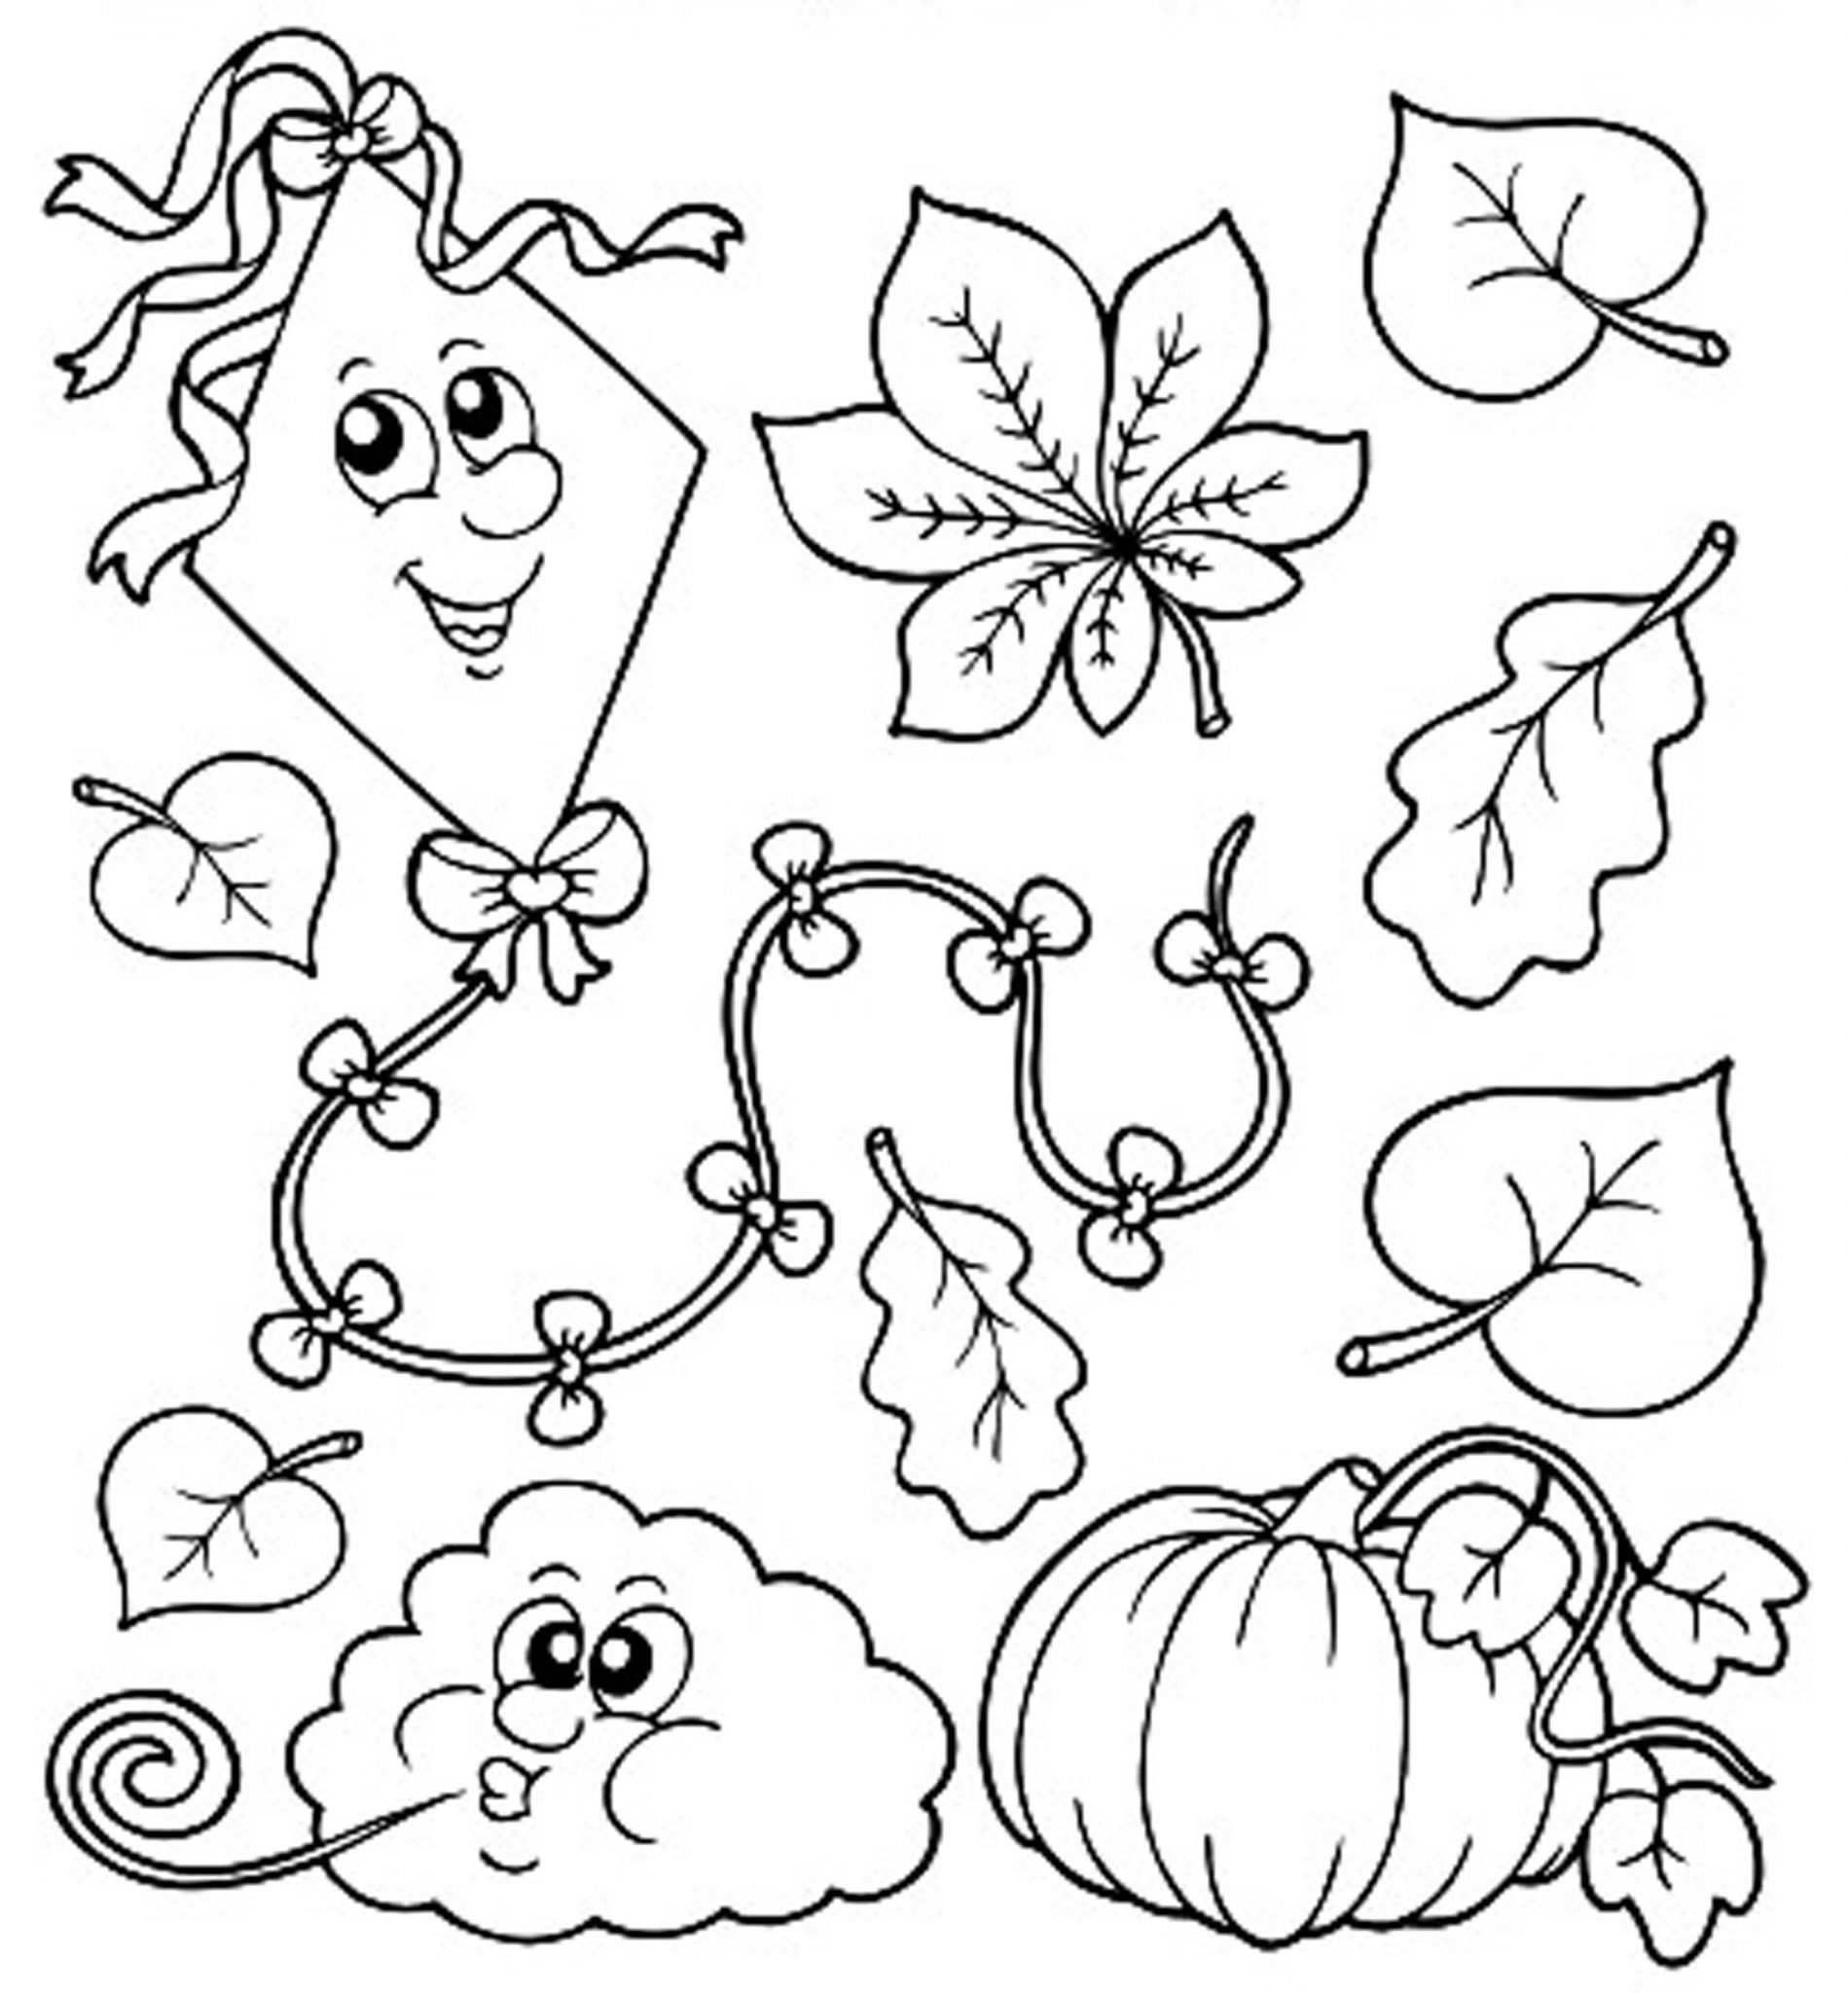 coloring fall pictures coloring club anadarko community library fall pictures coloring